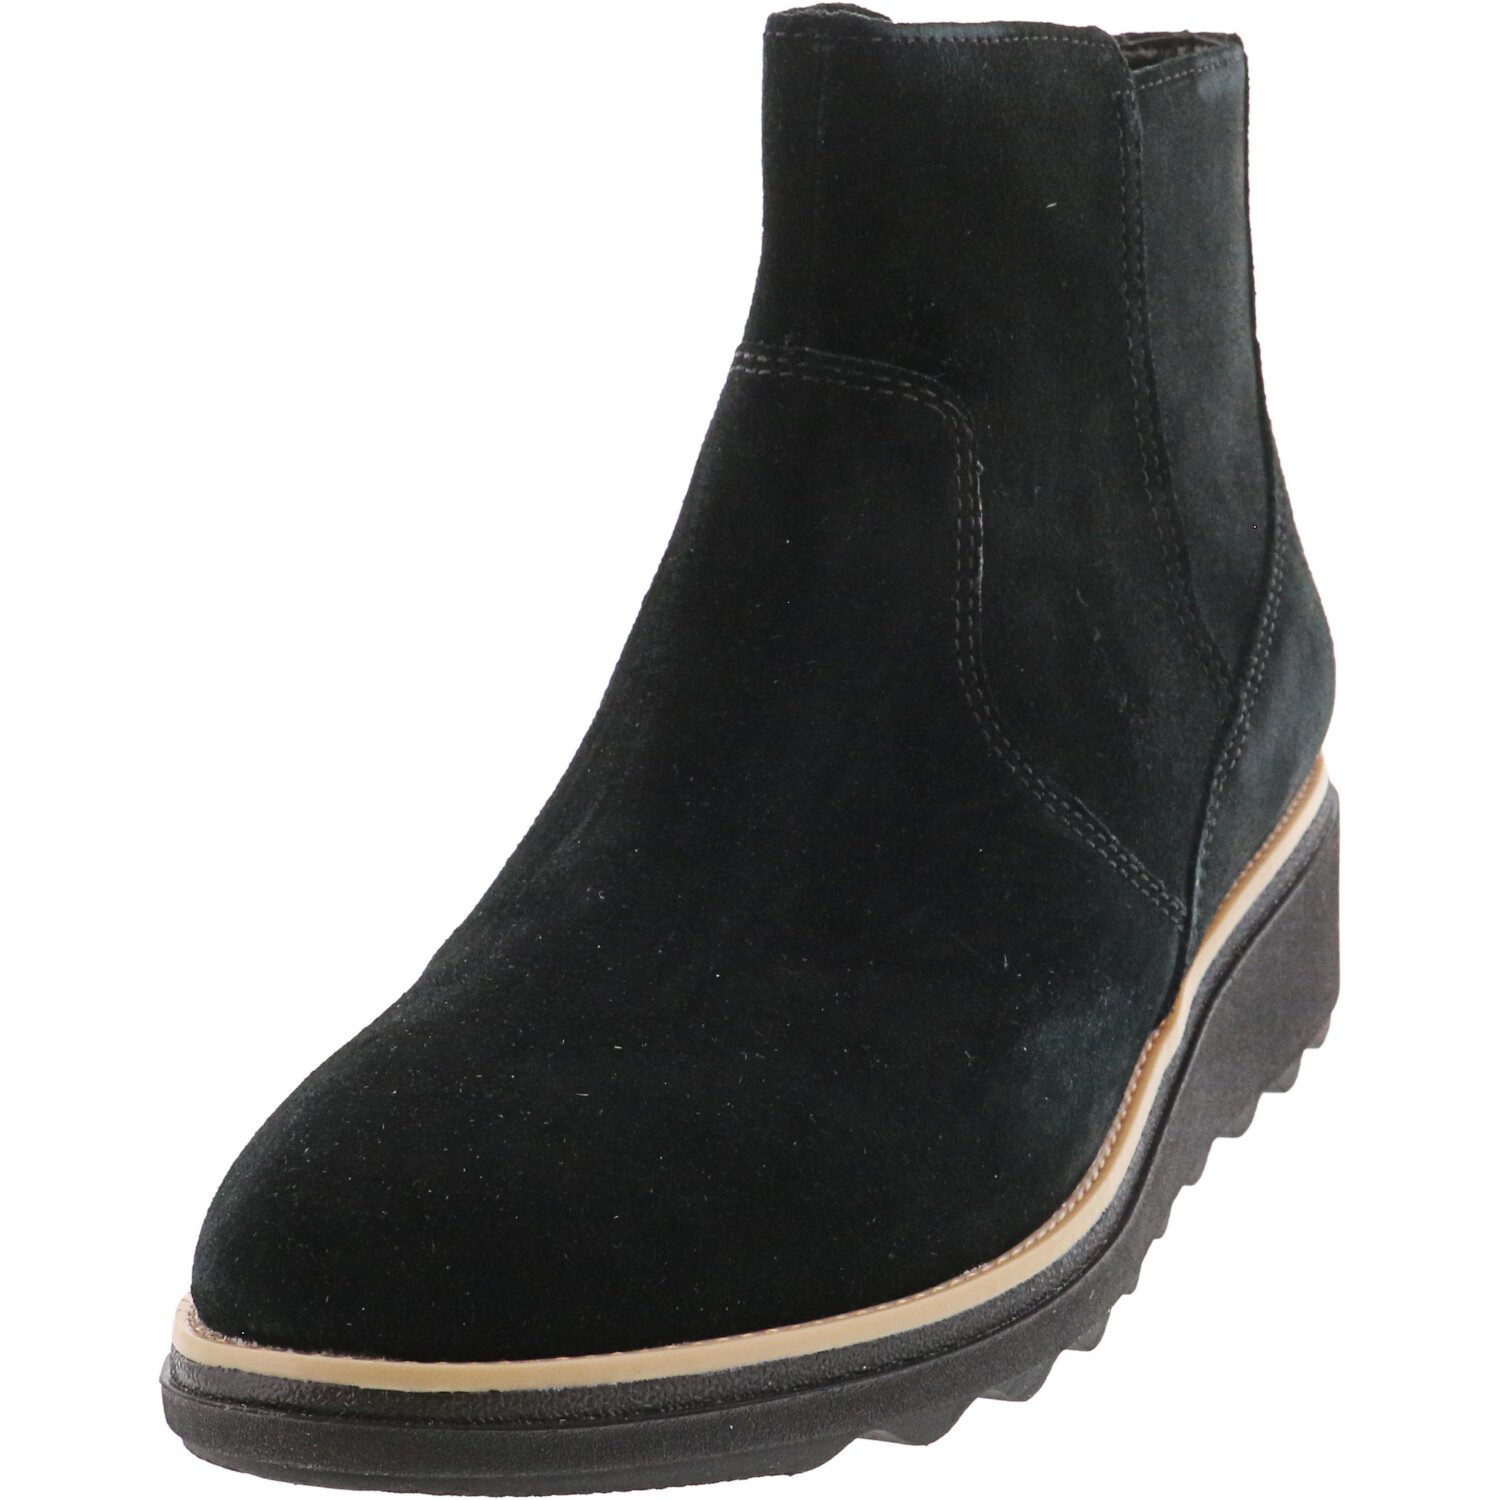 Clarks Women's Sharon Swing Suede Black Ankle-High Boot - 5.5M